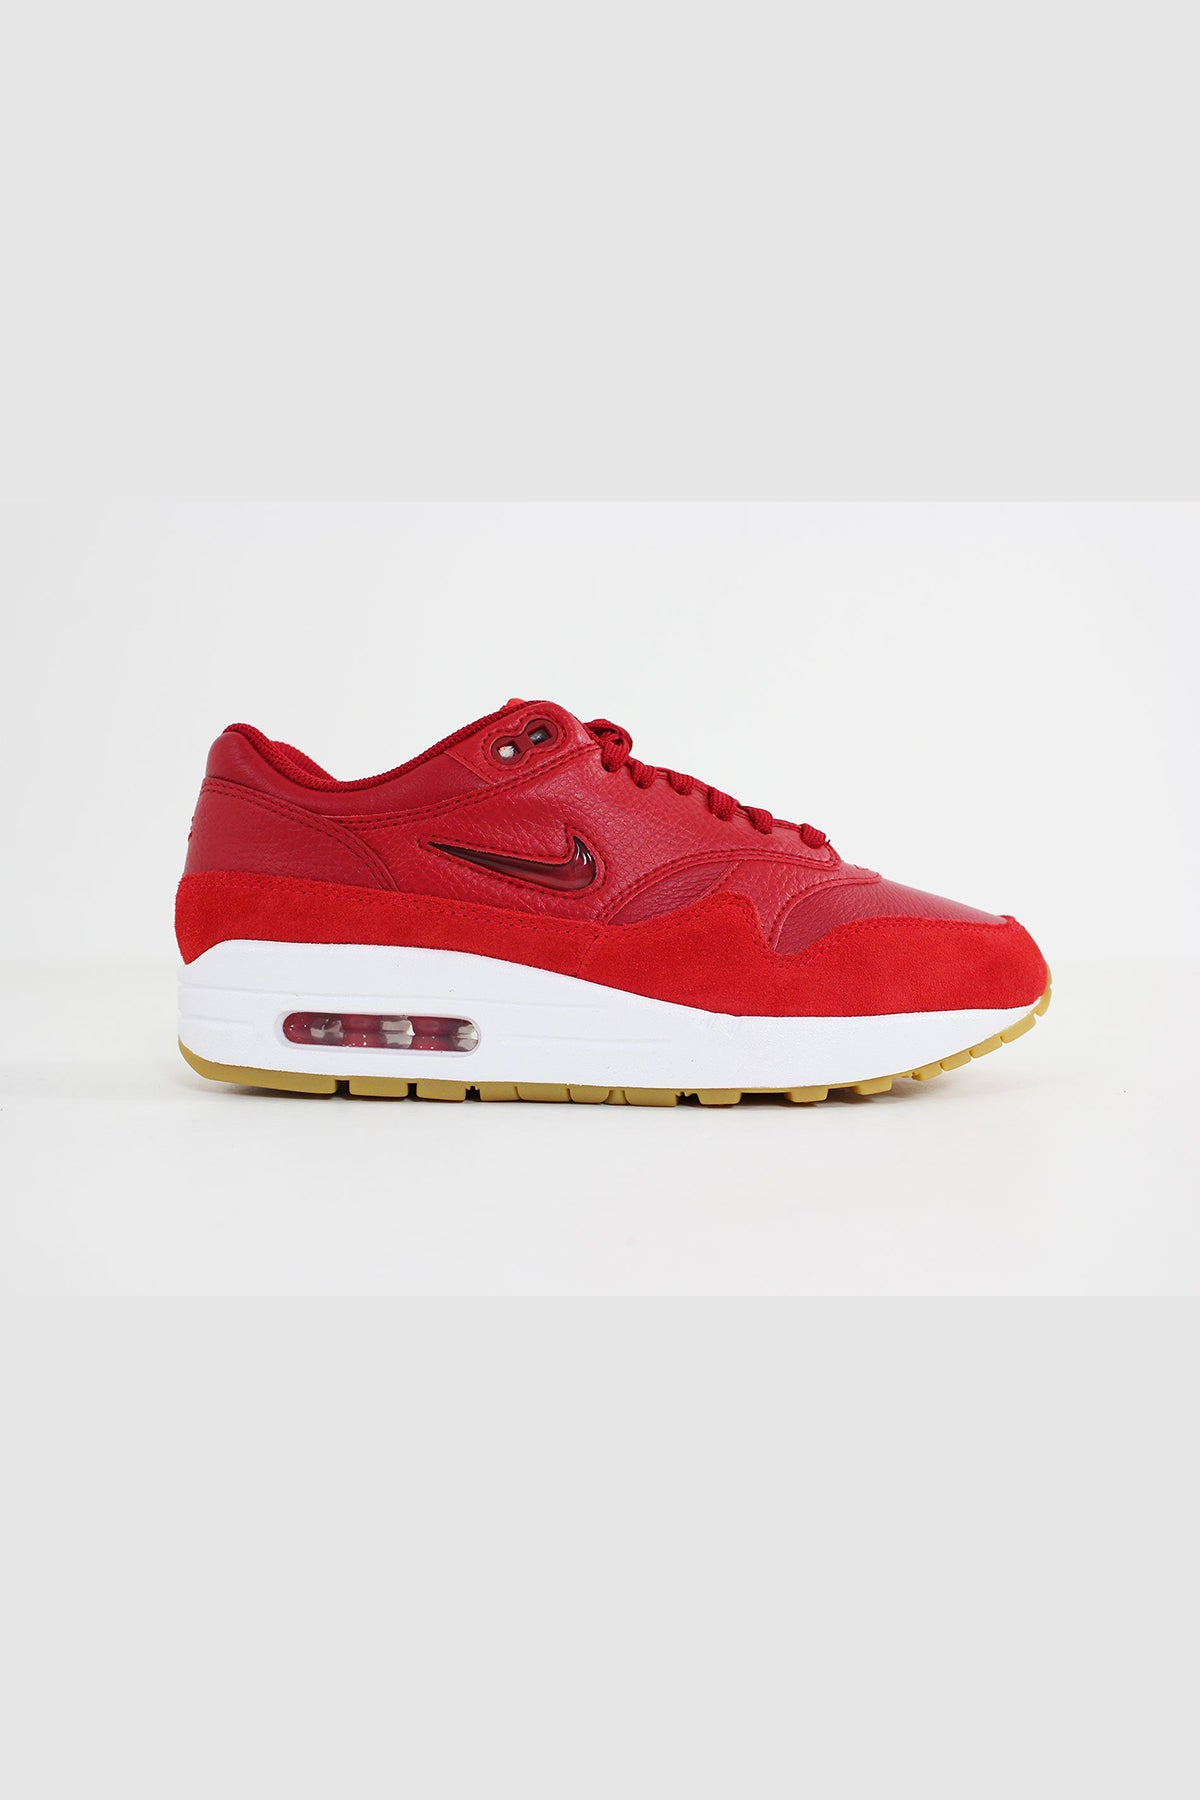 ad630af8a2 Nike - Air Max 1 Premium Women (Gym Red/ Gym Red - Speed Red) AA0512-602